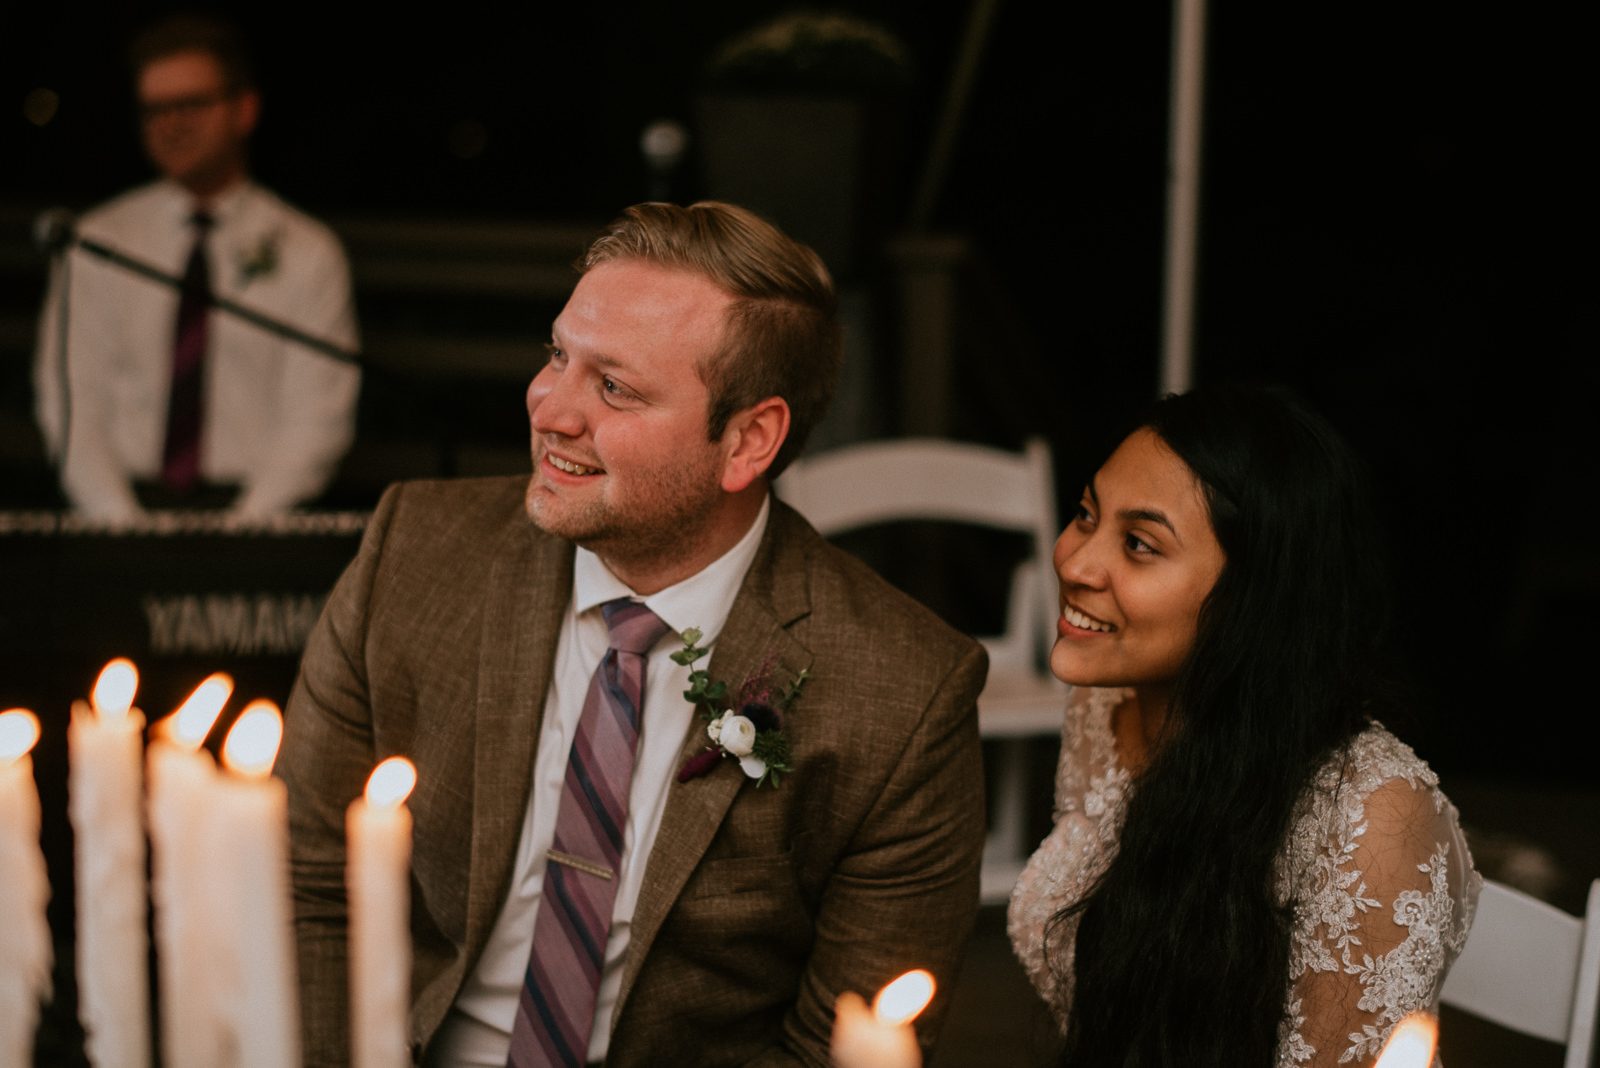 wedding recption bride and groom reactions